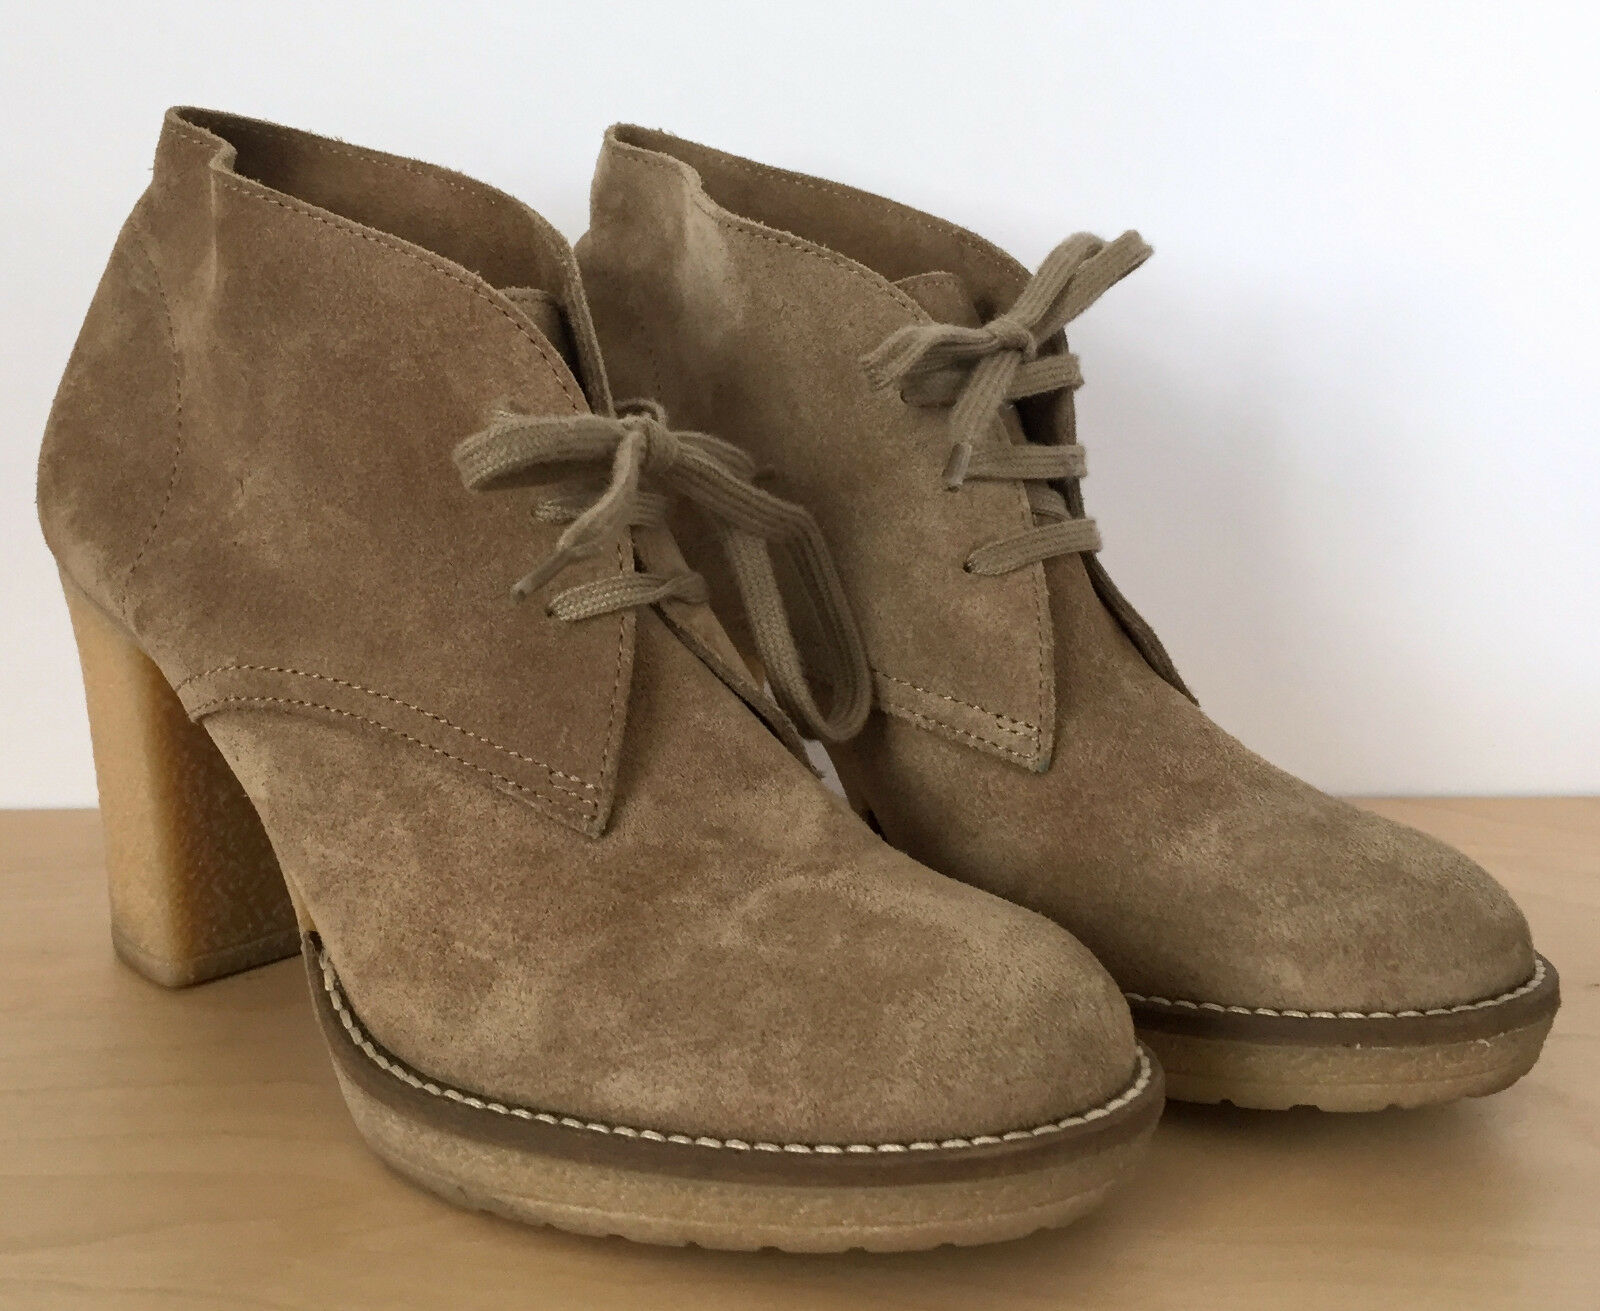 J. CREW femmes Beige Tan Suede Leather Chukka Crepe Sole Ankle bottes Heels Sz 8